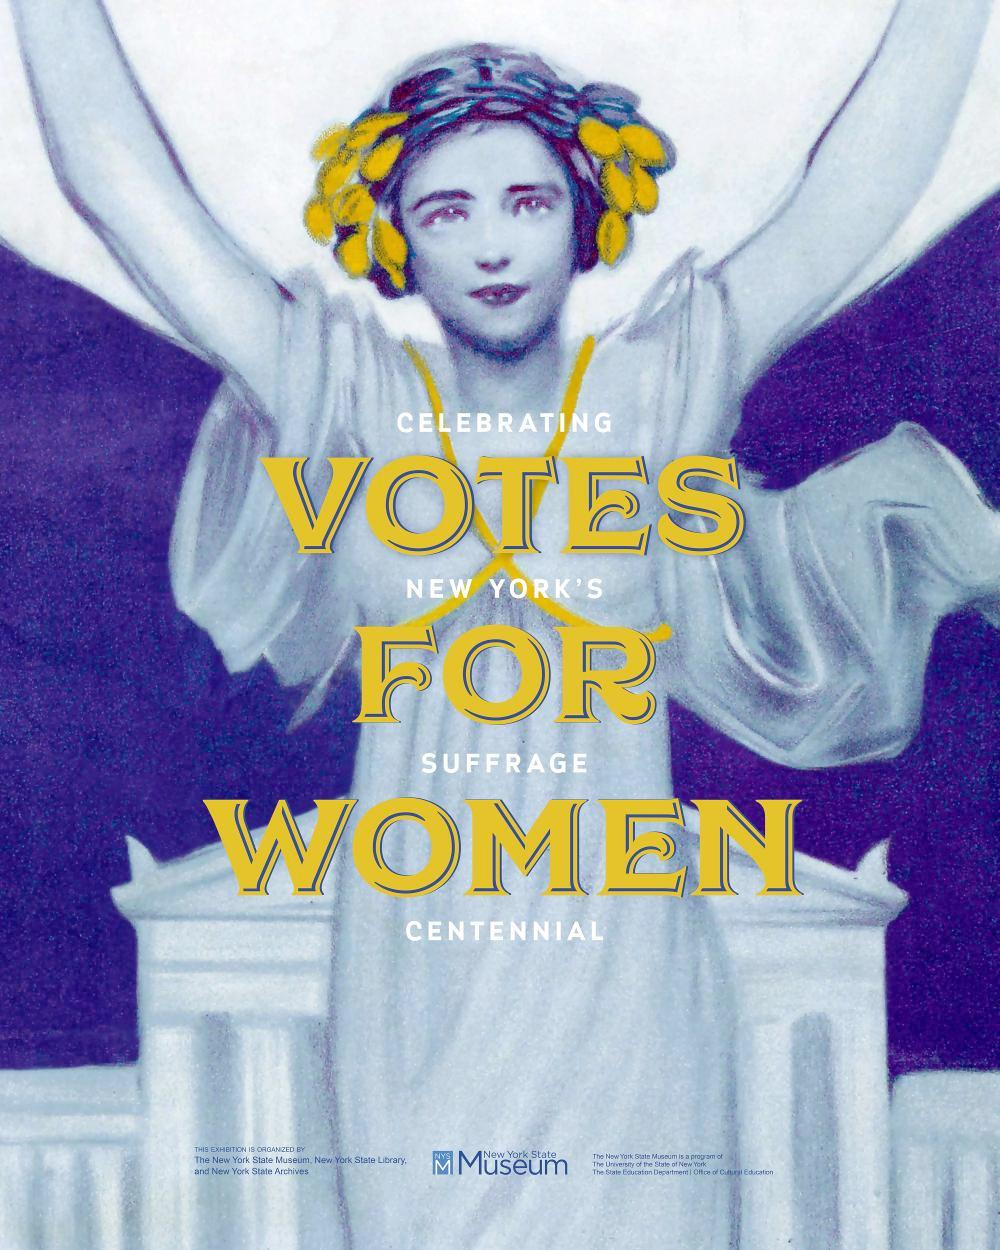 women s suffrage and new york history November 6 th 1917: women win the right to vote in new york state by susan ingalls lewis how did women get the right to vote in new york state most of my students assume that all women in the united states were granted suffrage at the same time, as the result of the 19 th amendment to the us constitution, passed in 1920.